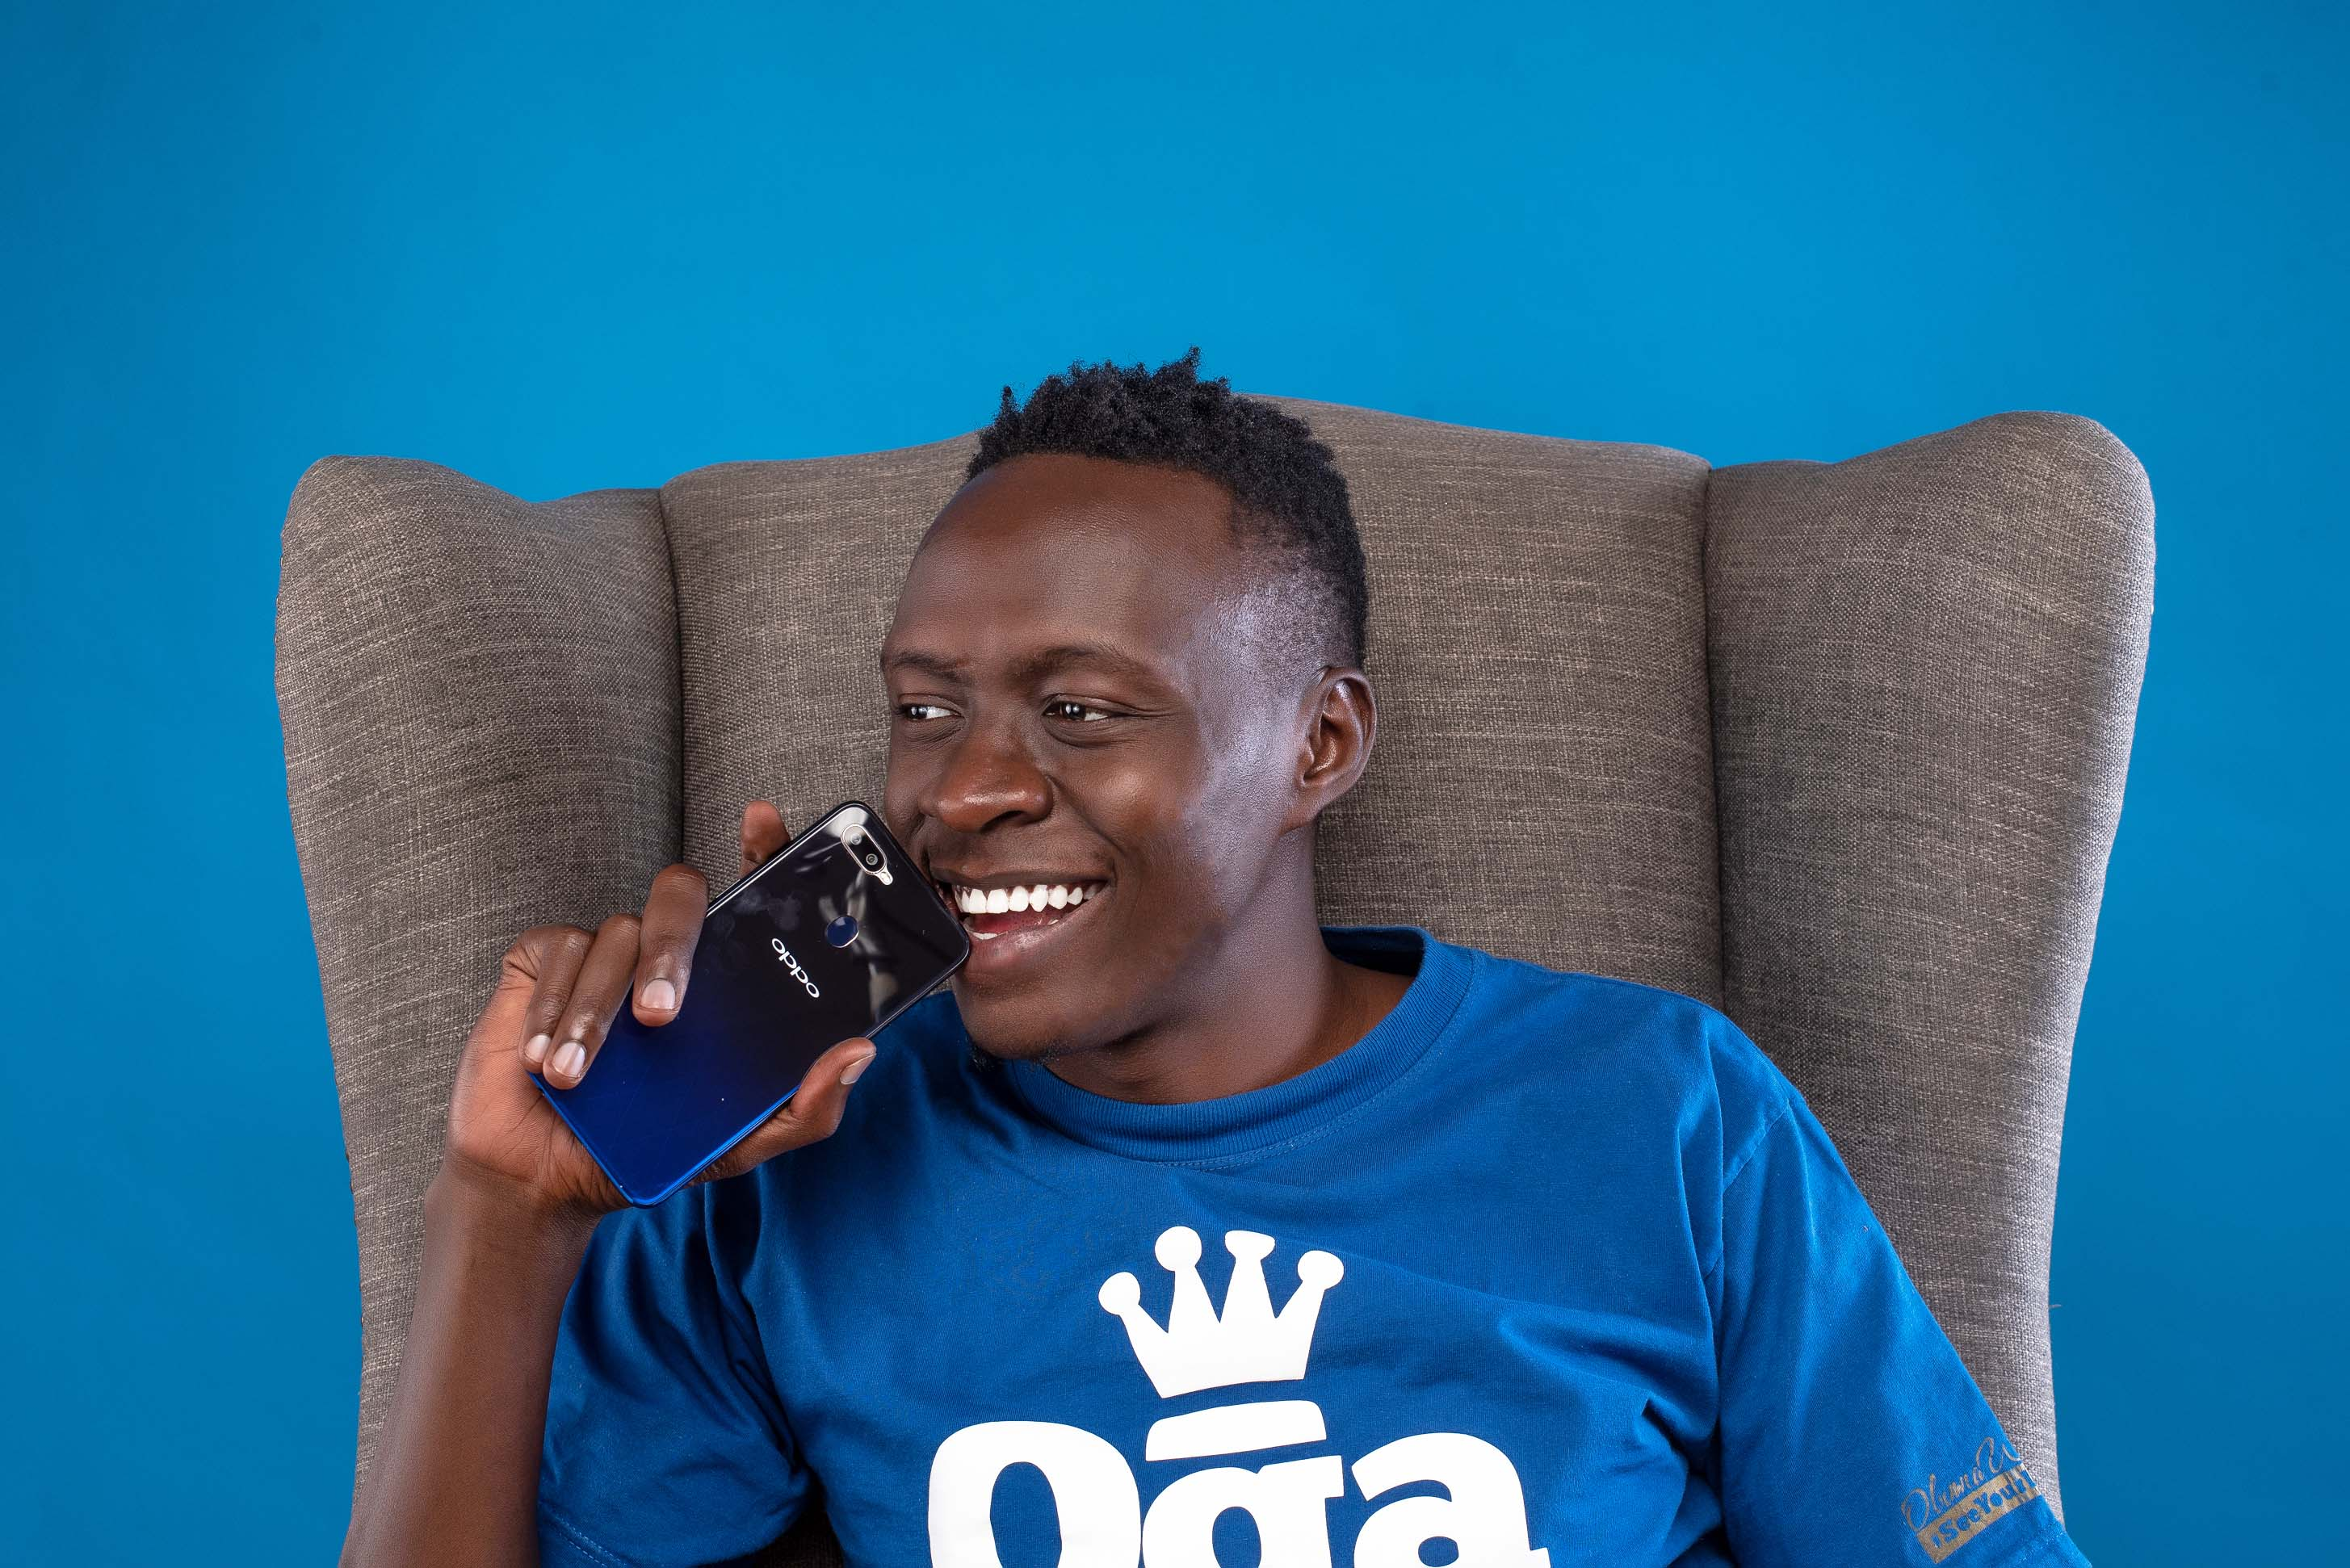 Oga Obina Enjoying his OPPO F9